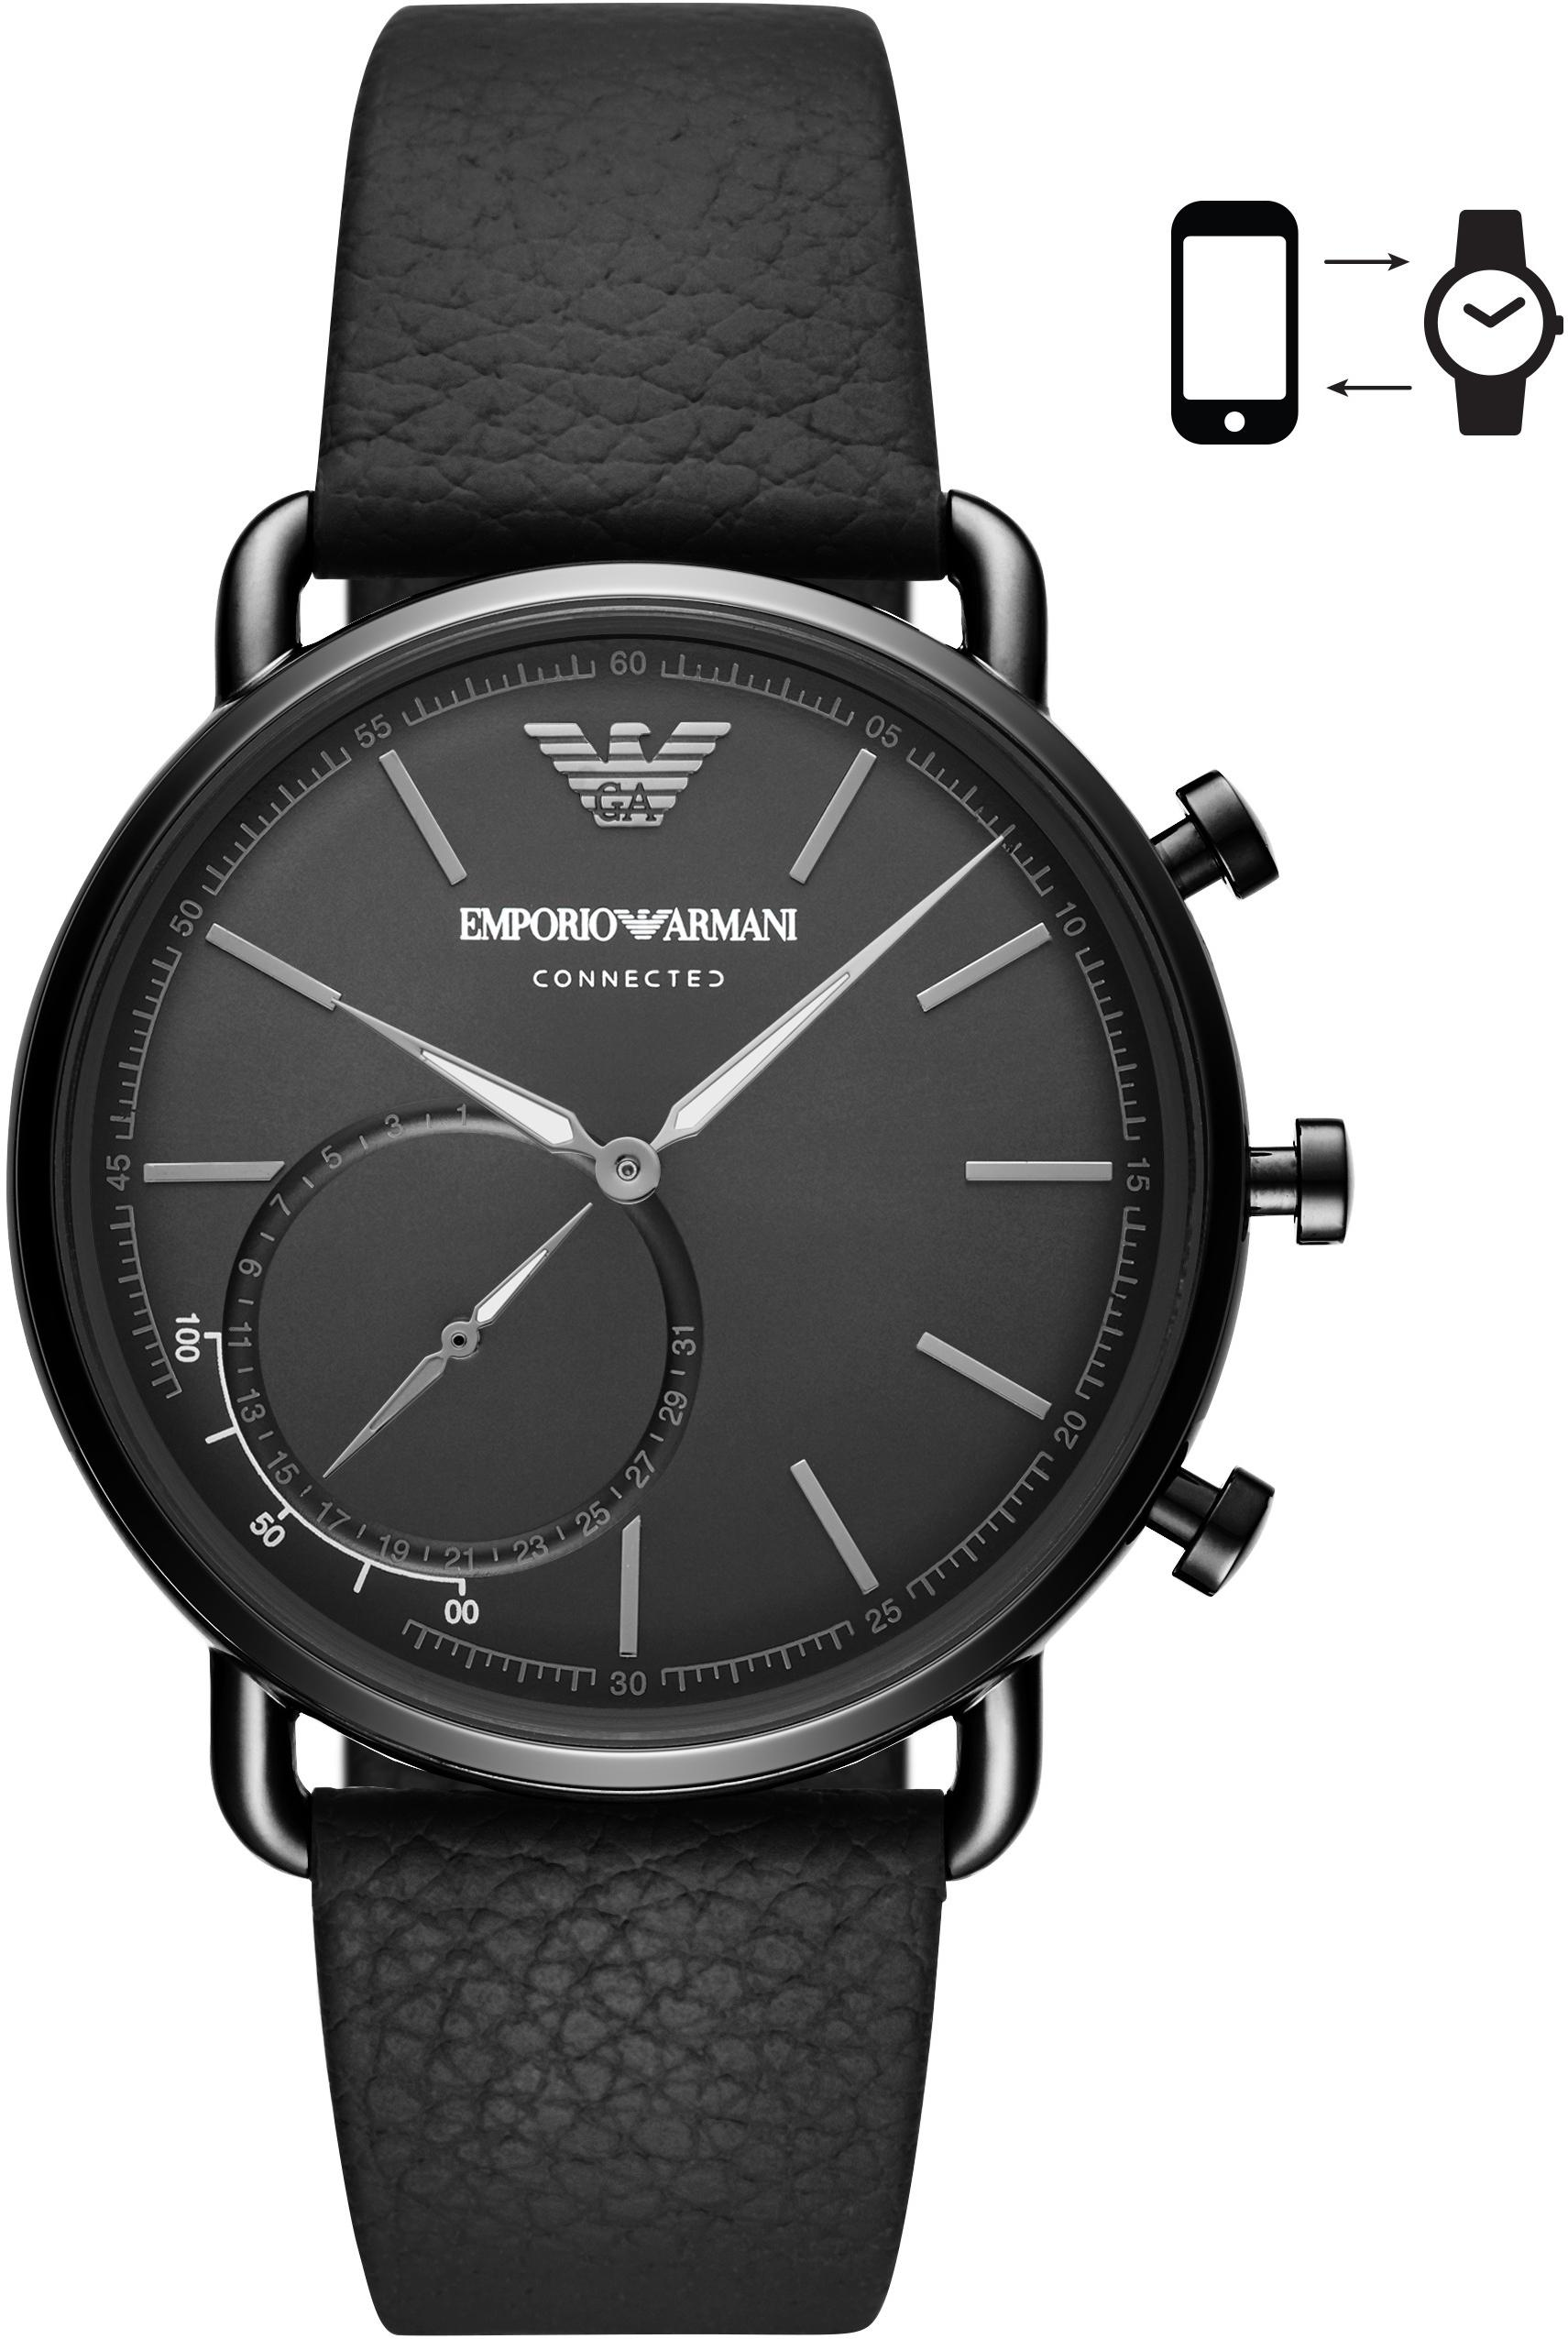 EMPORIO ARMANI CONNECTED ART3030 Smartwatch